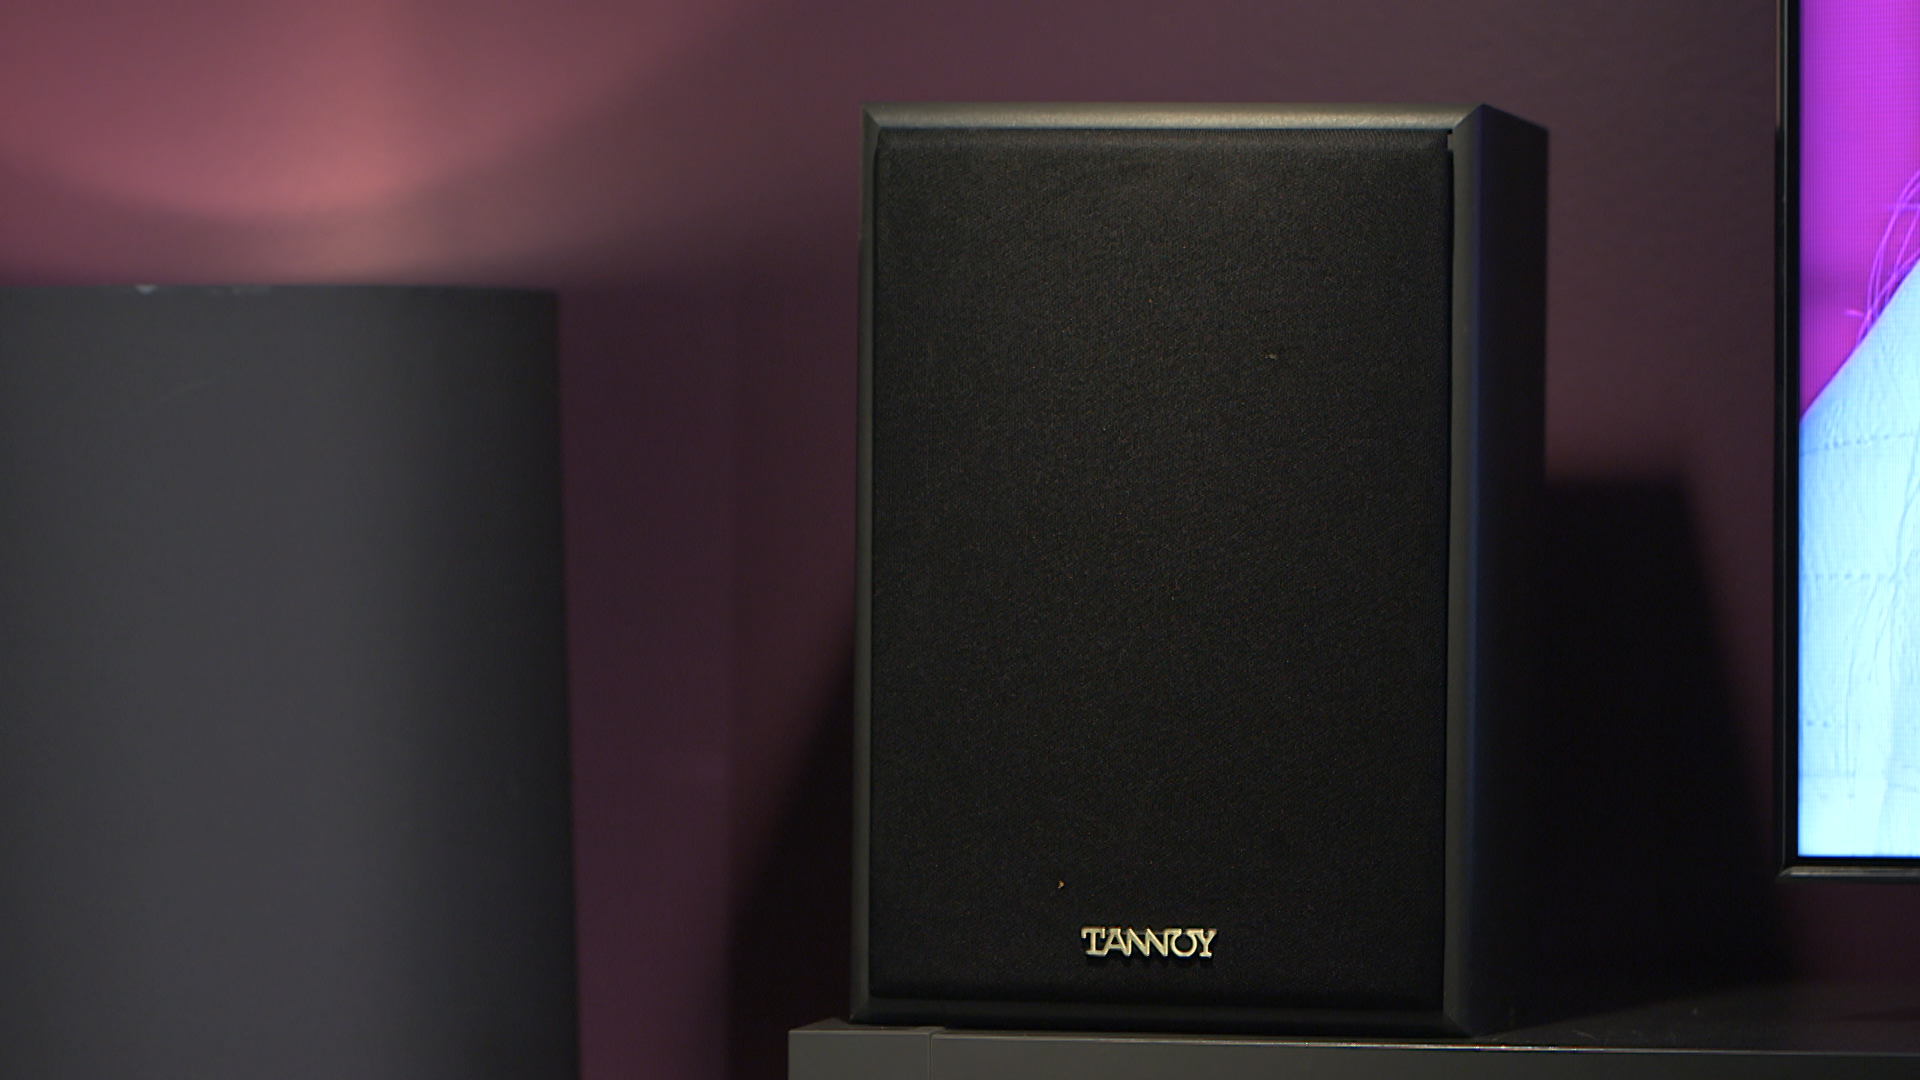 Video: Speakers on the floor: Yay or nay?